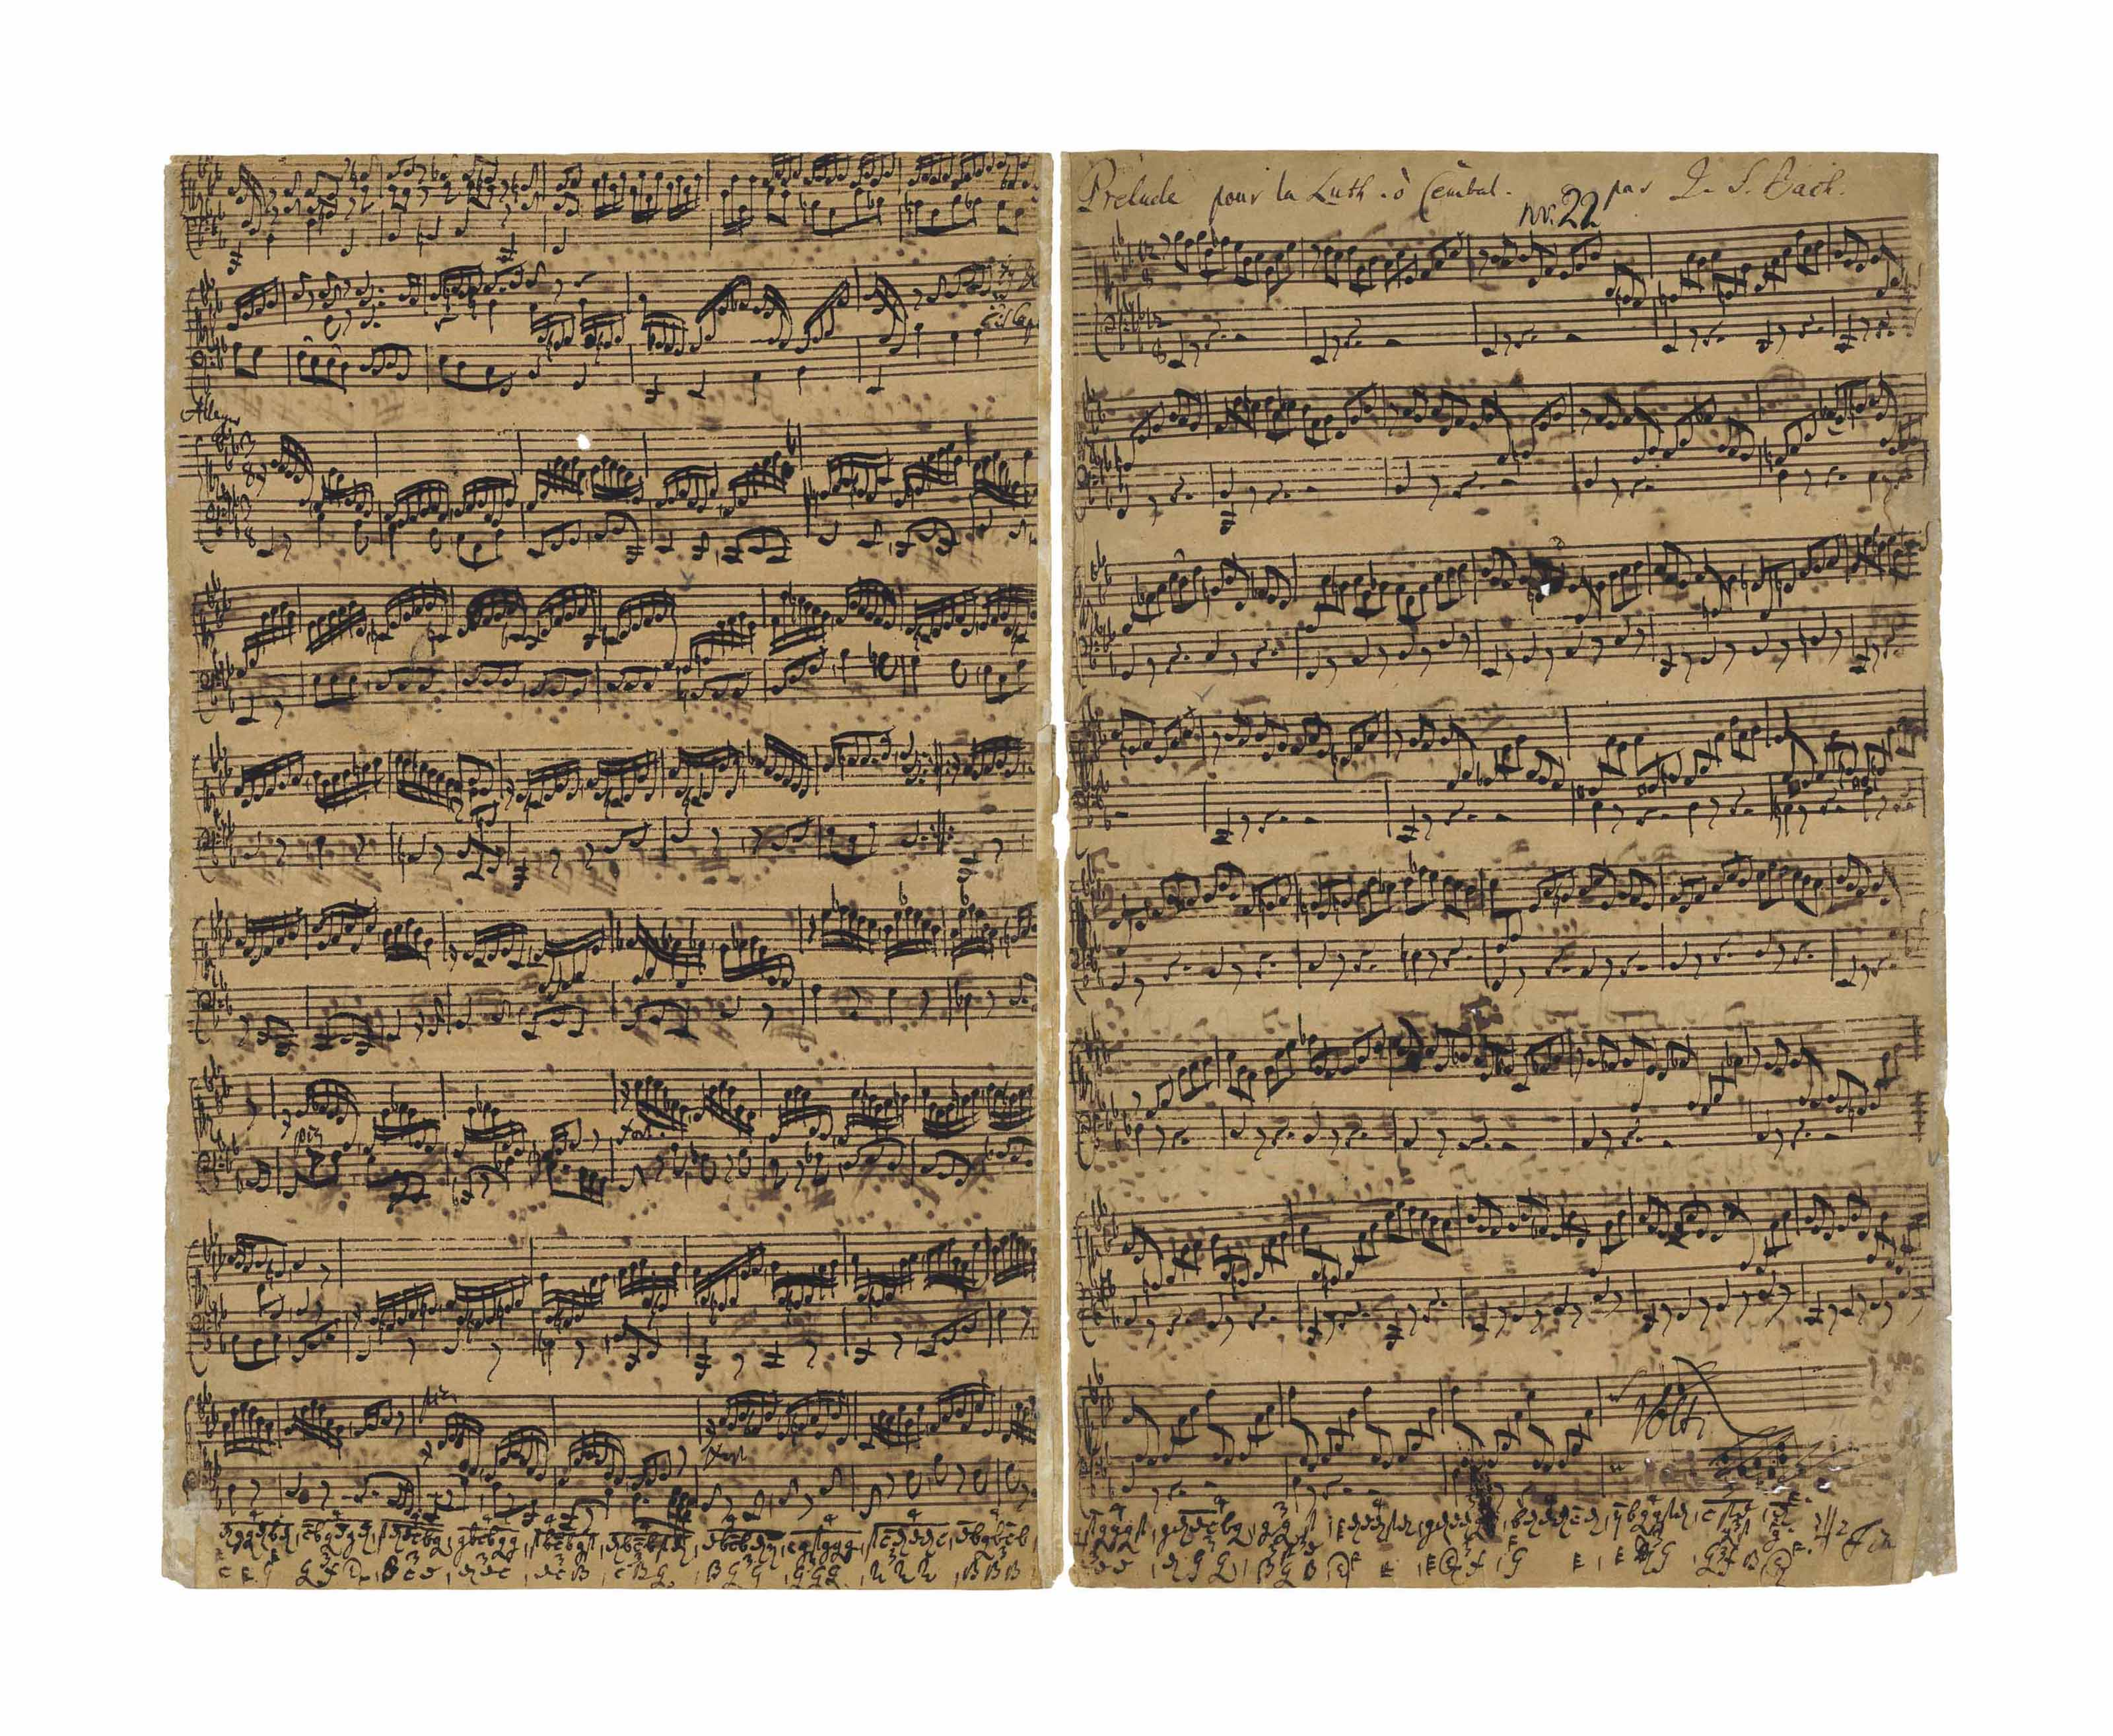 BACH, Johann Sebastian (1685-1750). Autograph music manuscript, titled and signed in autograph 'Prelude [-- Fuga – Allegro] pour la Luth. ò Cembal. Par J.S. Bach', the complete composing manuscript for the Prelude, Fugue and Allegro for lute or keyboard in E flat major, BWV 998, n.d. [c.1735-1740]. In keyboard notation, the conclusion of the Allegro compressed in German tablature into the lower margins of pp.4 and 1, the second and third movements titled 'Fuga' and 'Allegro' in autograph, approx. 18 autograph corrections, marked 'Fin.' at the conclusion; the numbering 'nr. 22' inked over a pencil annotation at the head (perhaps a catalogue number of the collection of the Counts von Voss of Buch), a few additional musical notes in another hand at the foot of p.1, possibly intended to be read in inverse orientation and suggesting that Bach may have reused the paper. Four pages, folio (approx 345 x 213mm), on a bifolium (the two leaves now separated, light even browning and limited